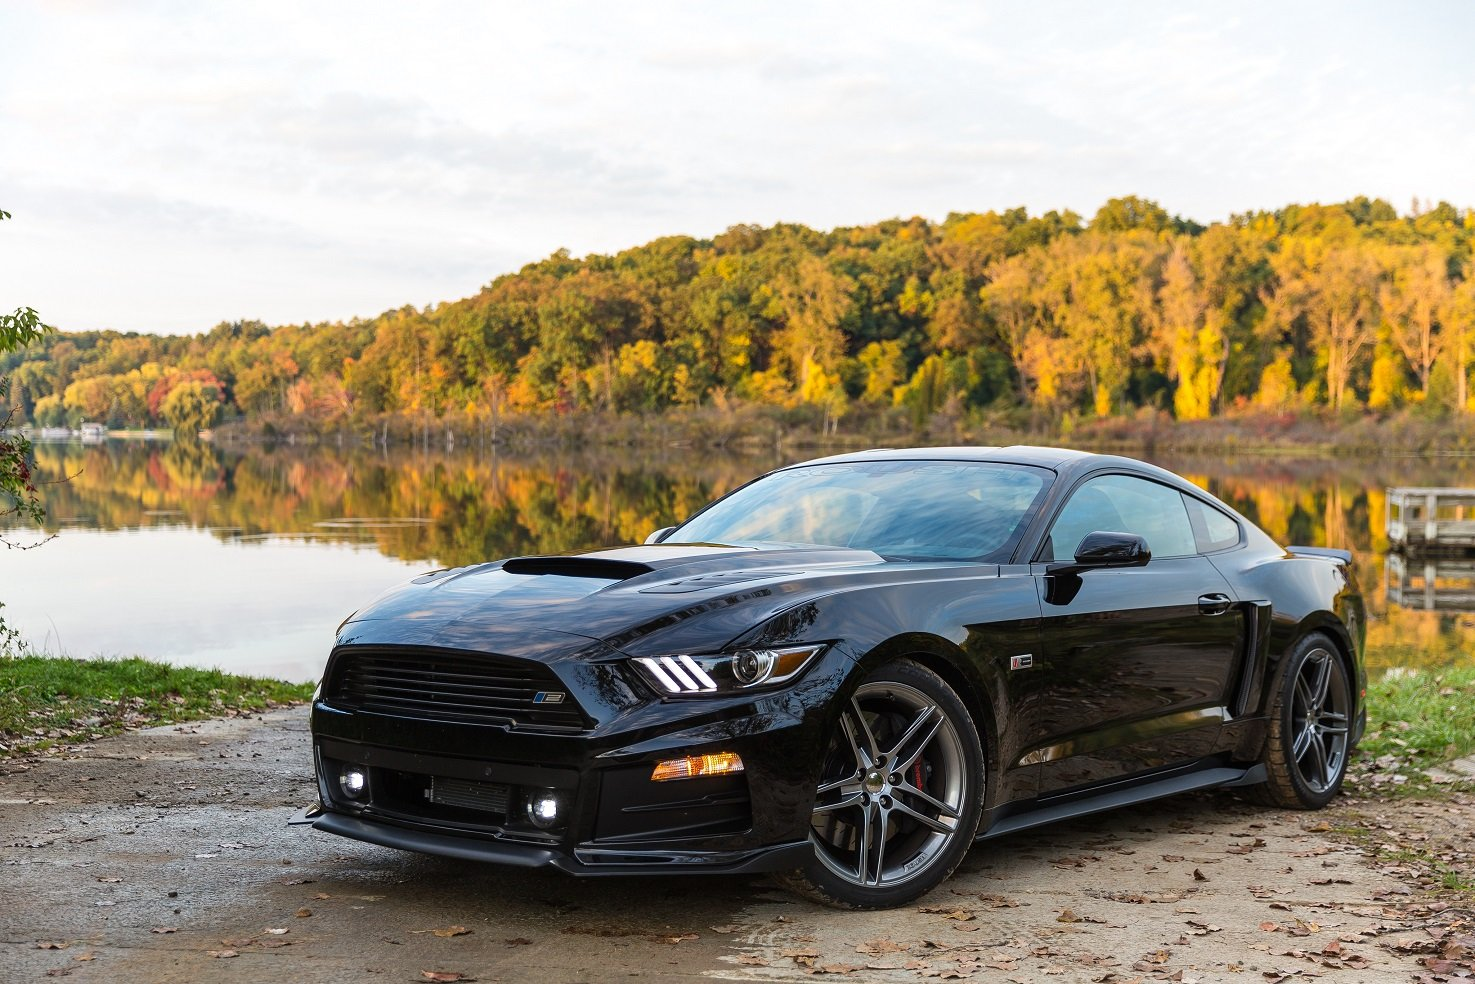 2015 Roush Stage 2 mustang modified black wallpaper 1475x984 1475x984